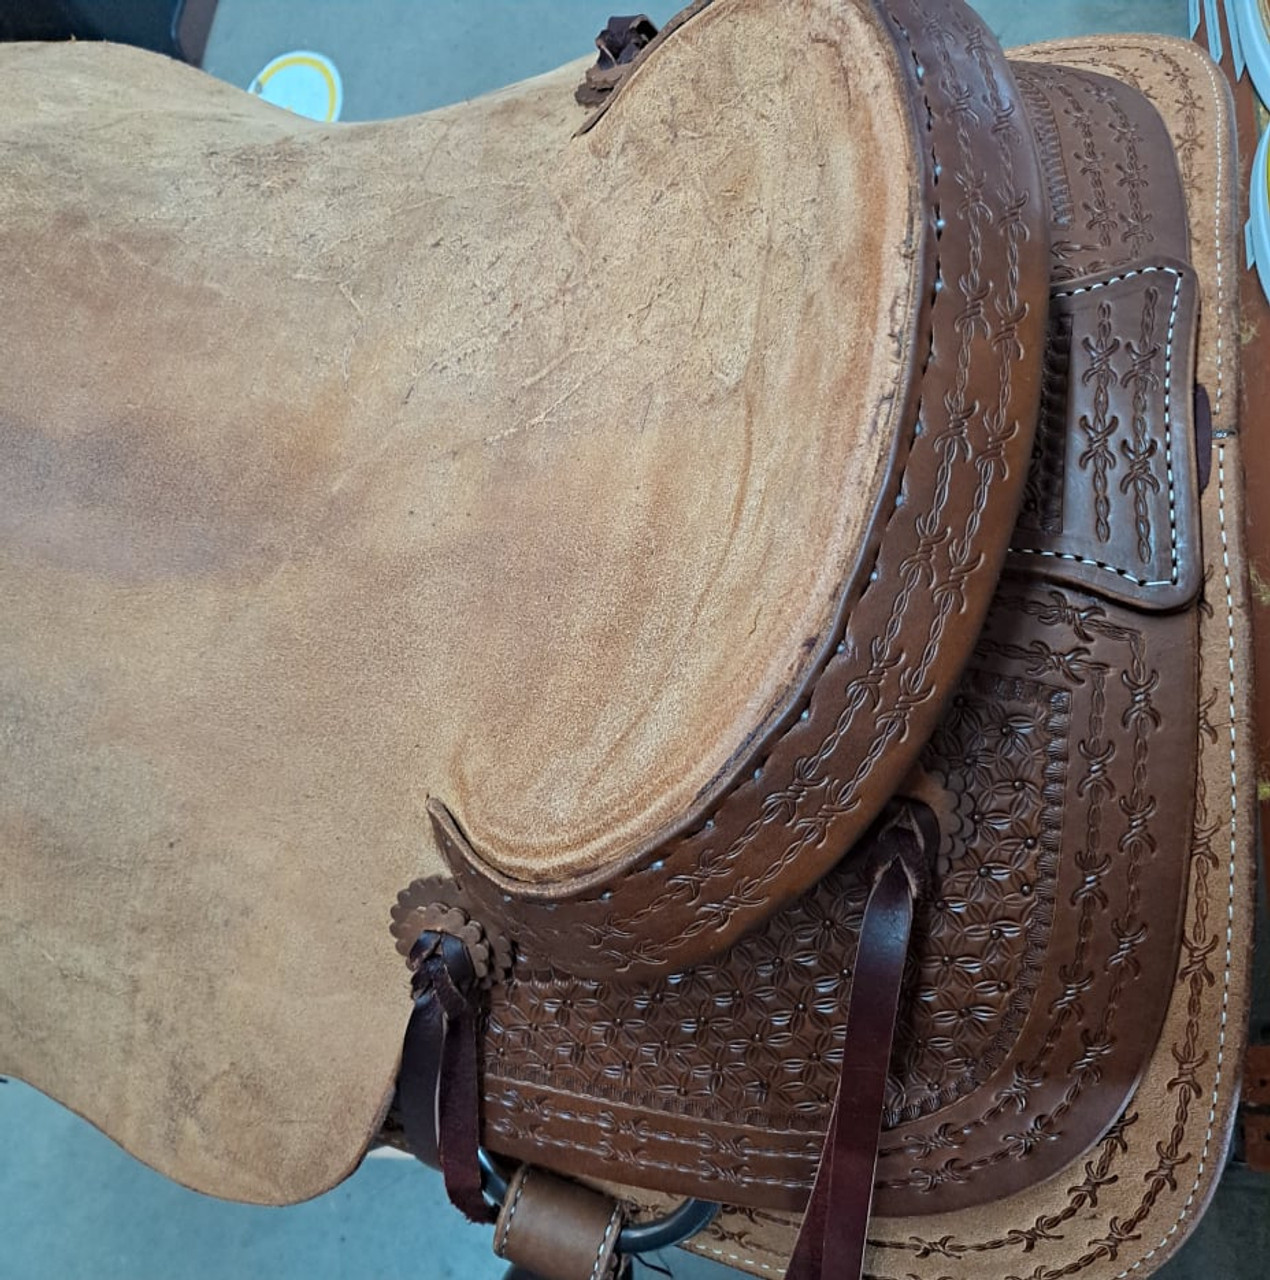 New Ranch Cutter by Fort Worth Saddle Co with 17 inch seat. Well built, hand-tooled ranch cutter. 6 strings, roughout contact points, dark oil finish. Includes latigo and offside, flank billets and flank cinch. Covered by the best warranty in the business. Gullet size is 7.25 inch, weight is 28lbs, and skirt is 28.75 inch. Made in USA. Limited lifetime warranty.  S1409